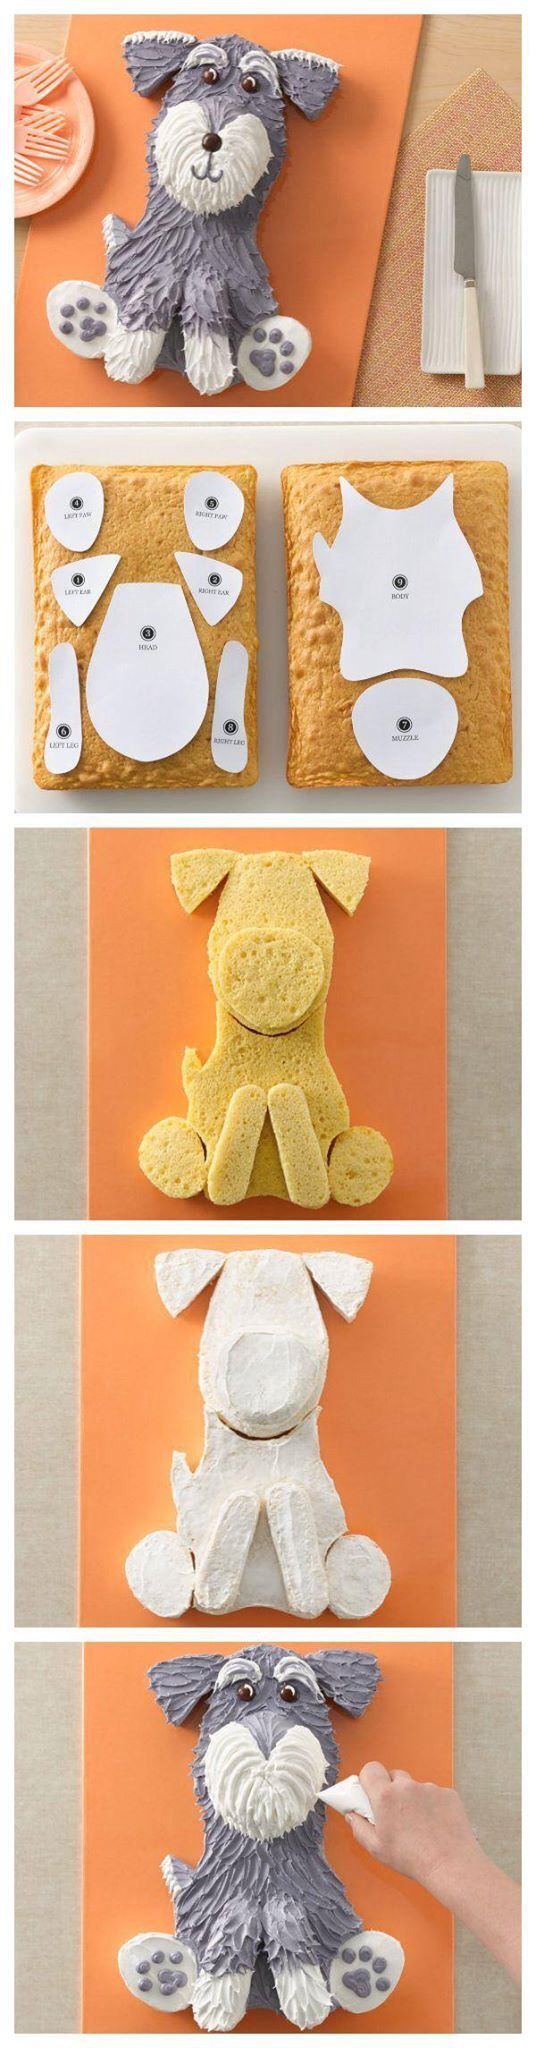 So cute! I have to make this because I LOVE Schnauzers!                                                                                                                                                                                 More